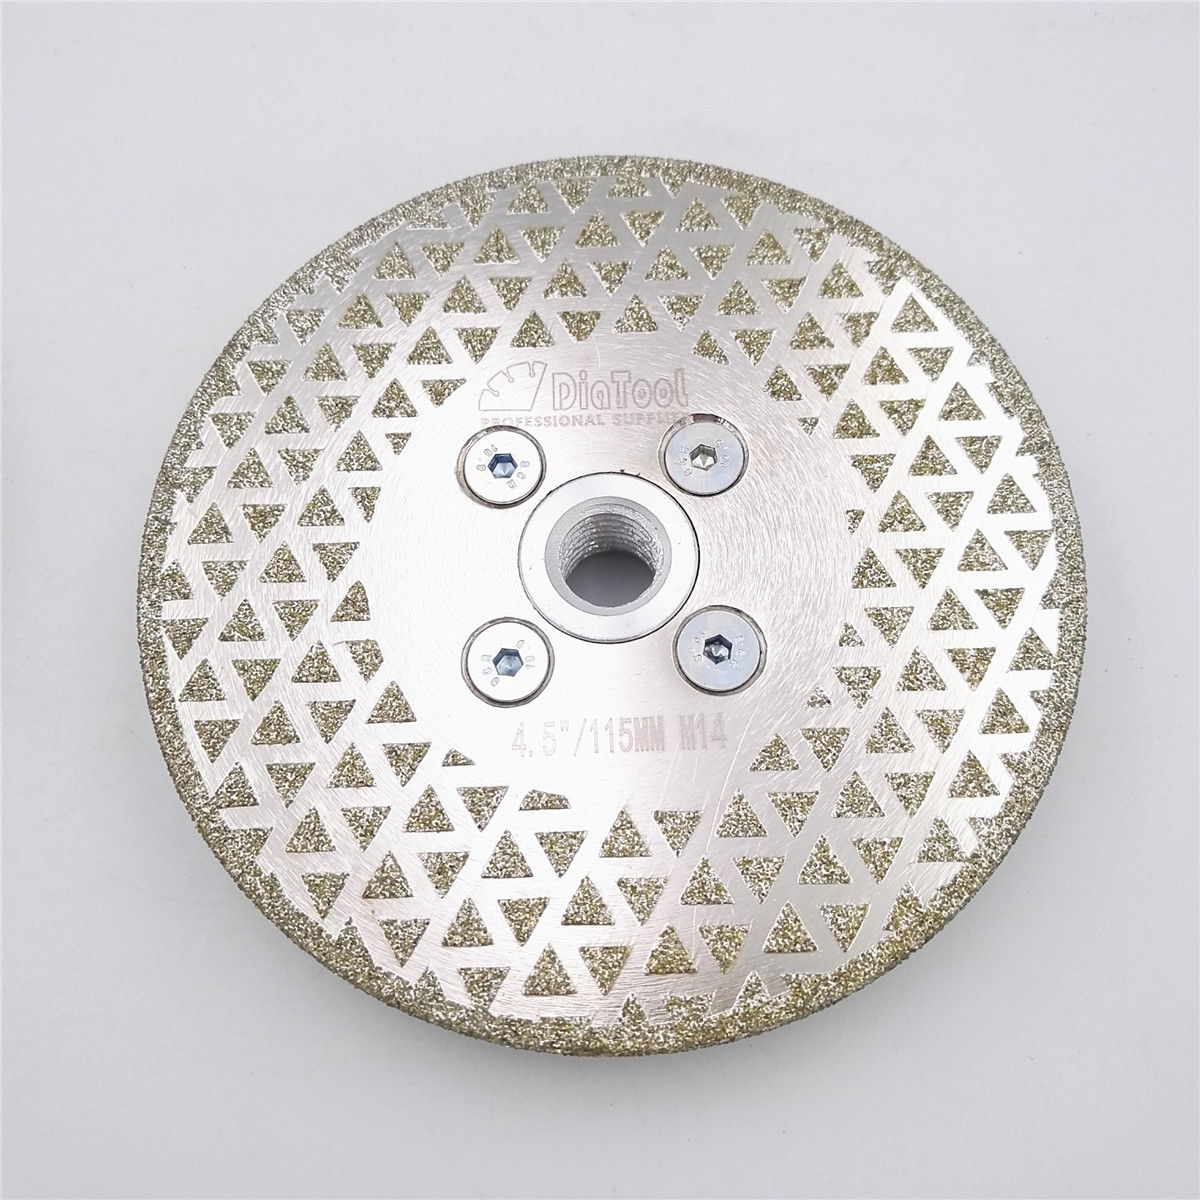 DIATOOL 4.5 Electroplated Both Side Coated Diamond Wheels Triangle Spots Diamond Disc 115mm Cutting & Grinding Blade M14 Thread free shipping coarse medium fine grit 4 inch diamond turbo cup wheels m14 thread for grinding concrete and stone 3pcs set